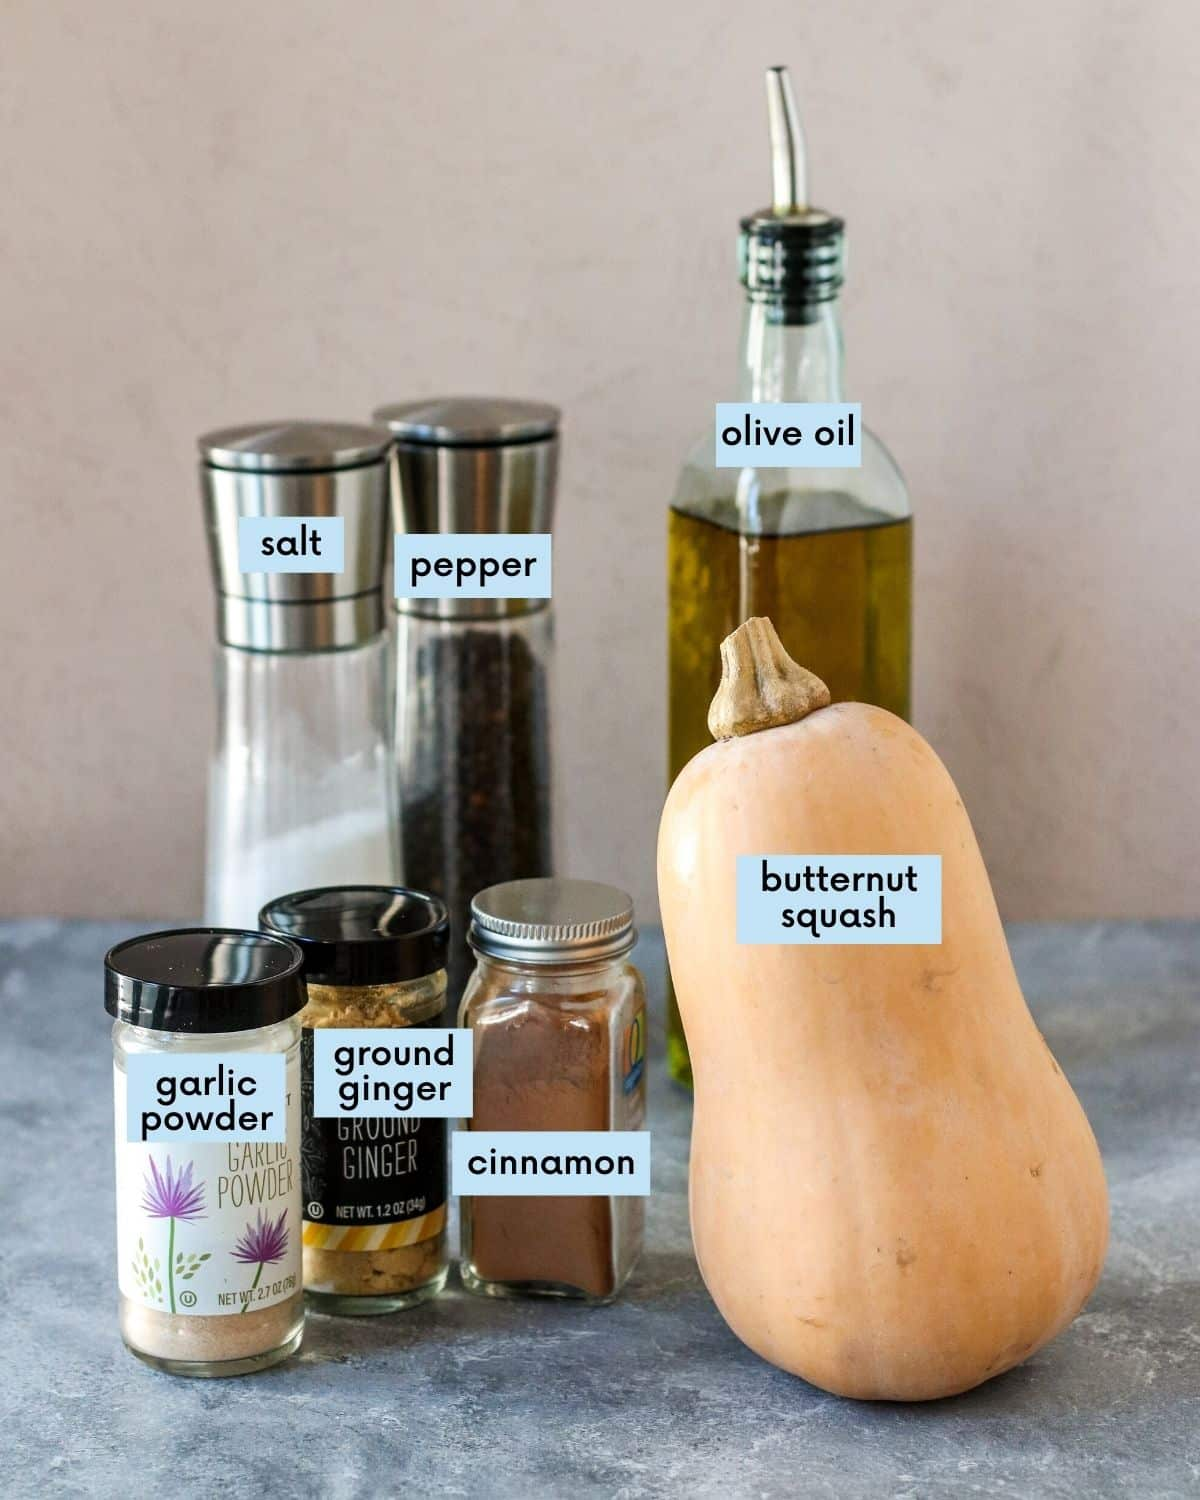 Labeled ingredients you'll need to make this recipe